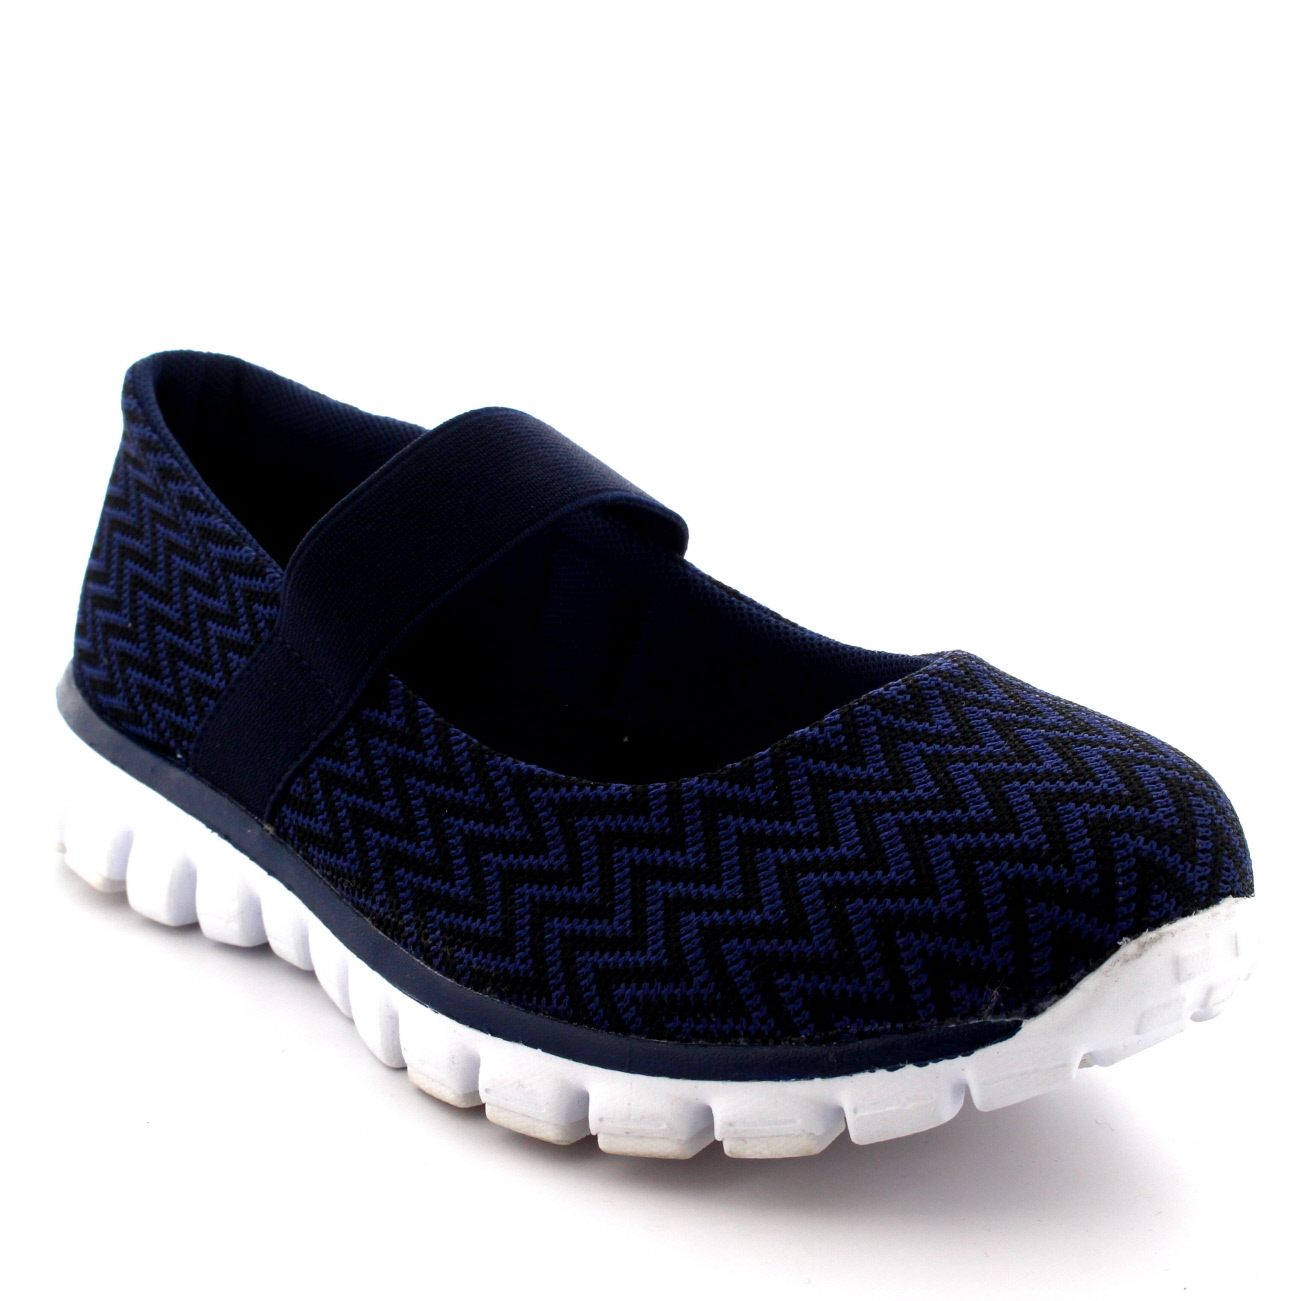 sports shoes b4d0c bf002 Details about Womens Running Walking Low Top Sports Work Shoes Gym Mary  Jane Trainers UK 3-9